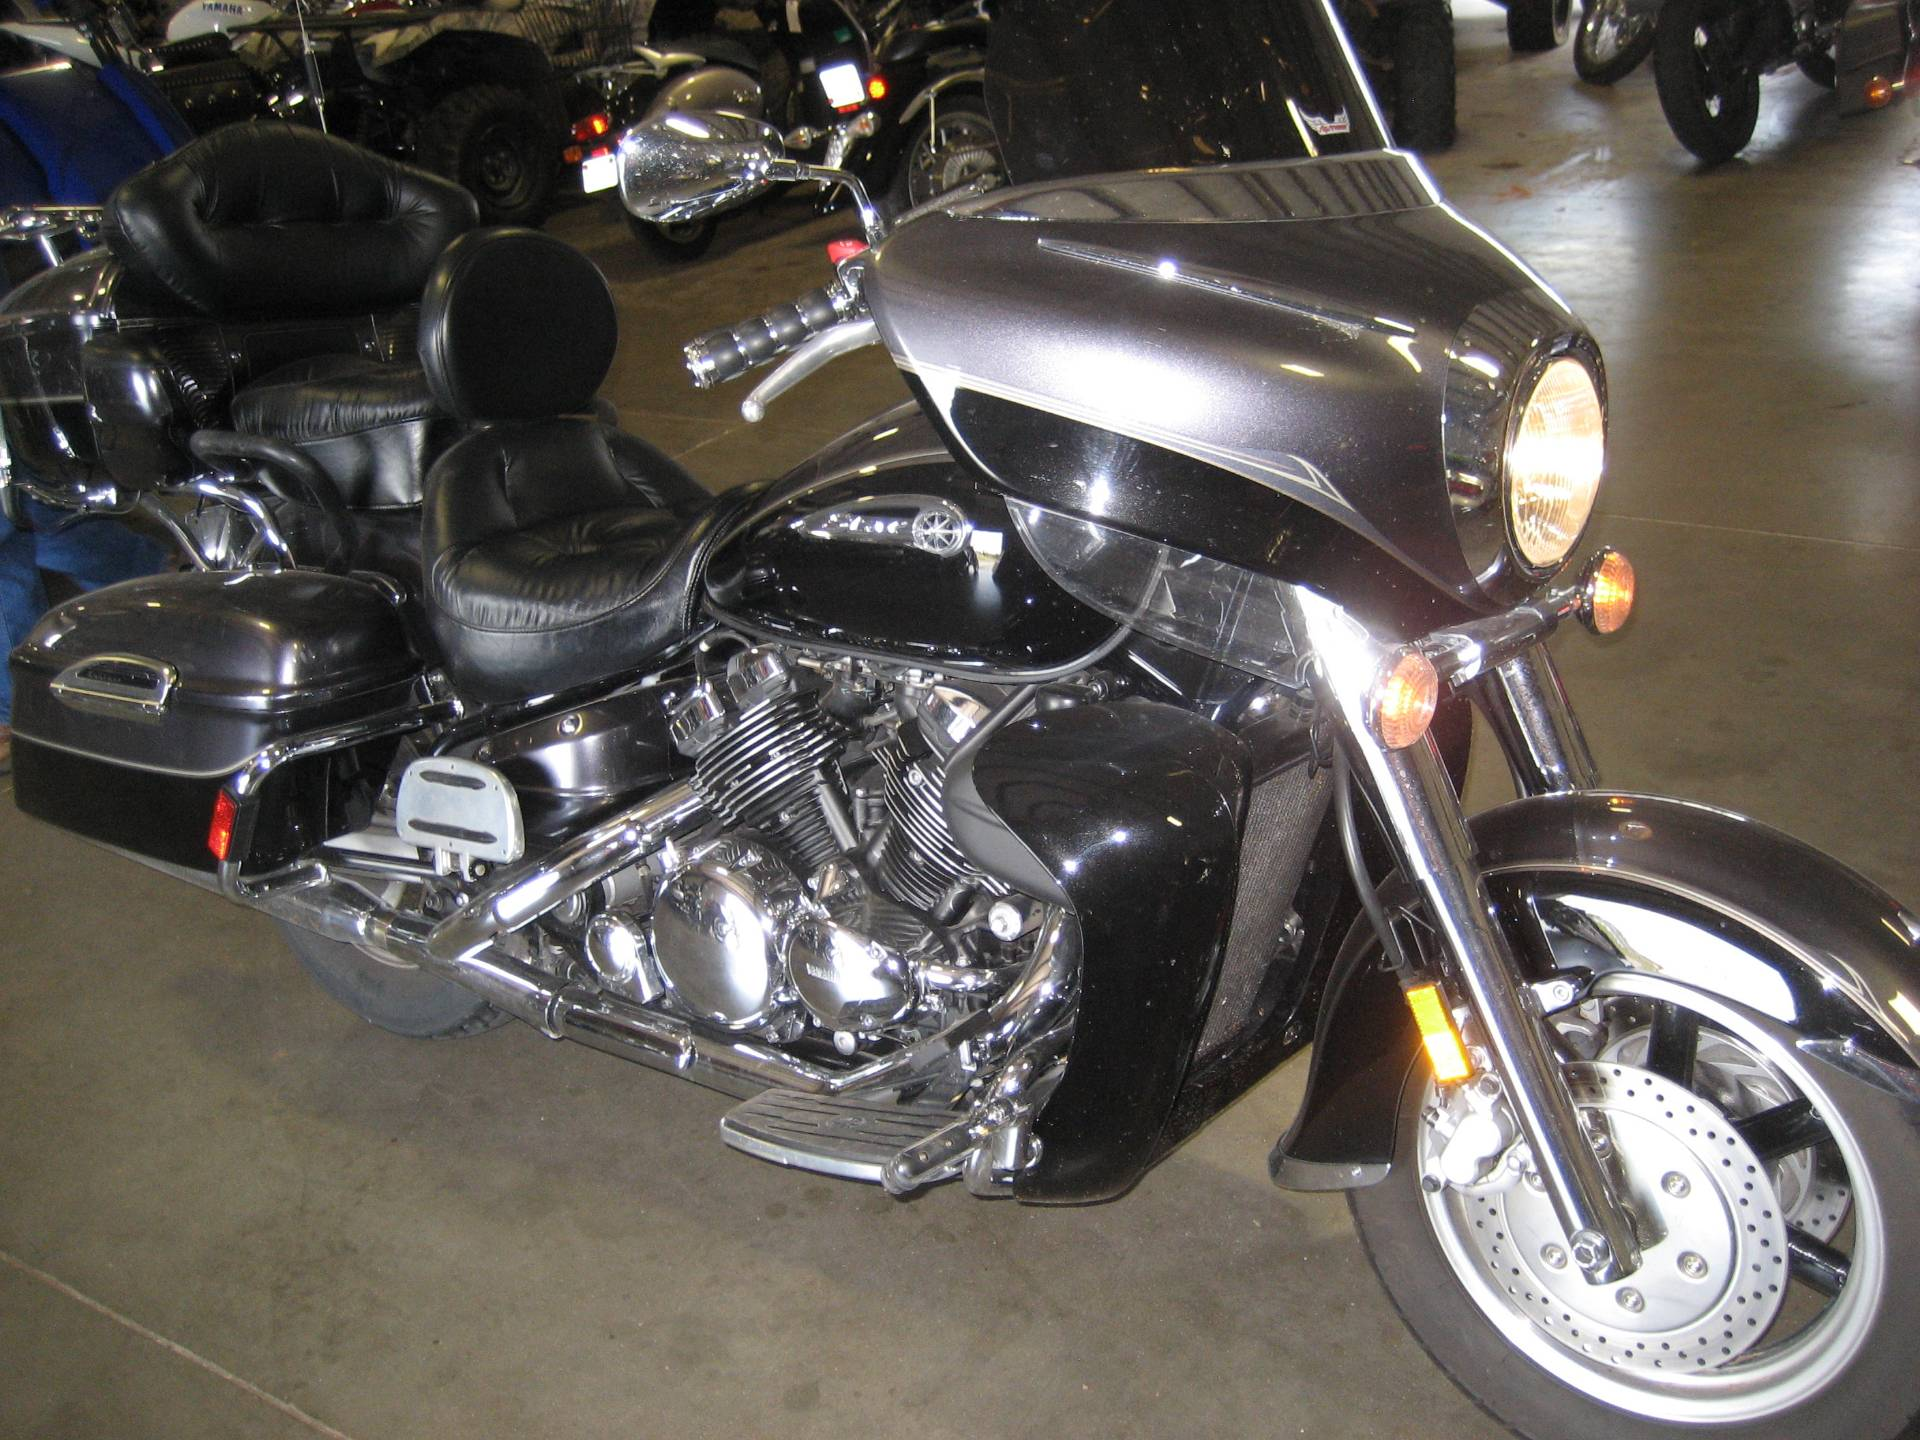 2013 Yamaha Royal Star Venture S in Shawnee, Oklahoma